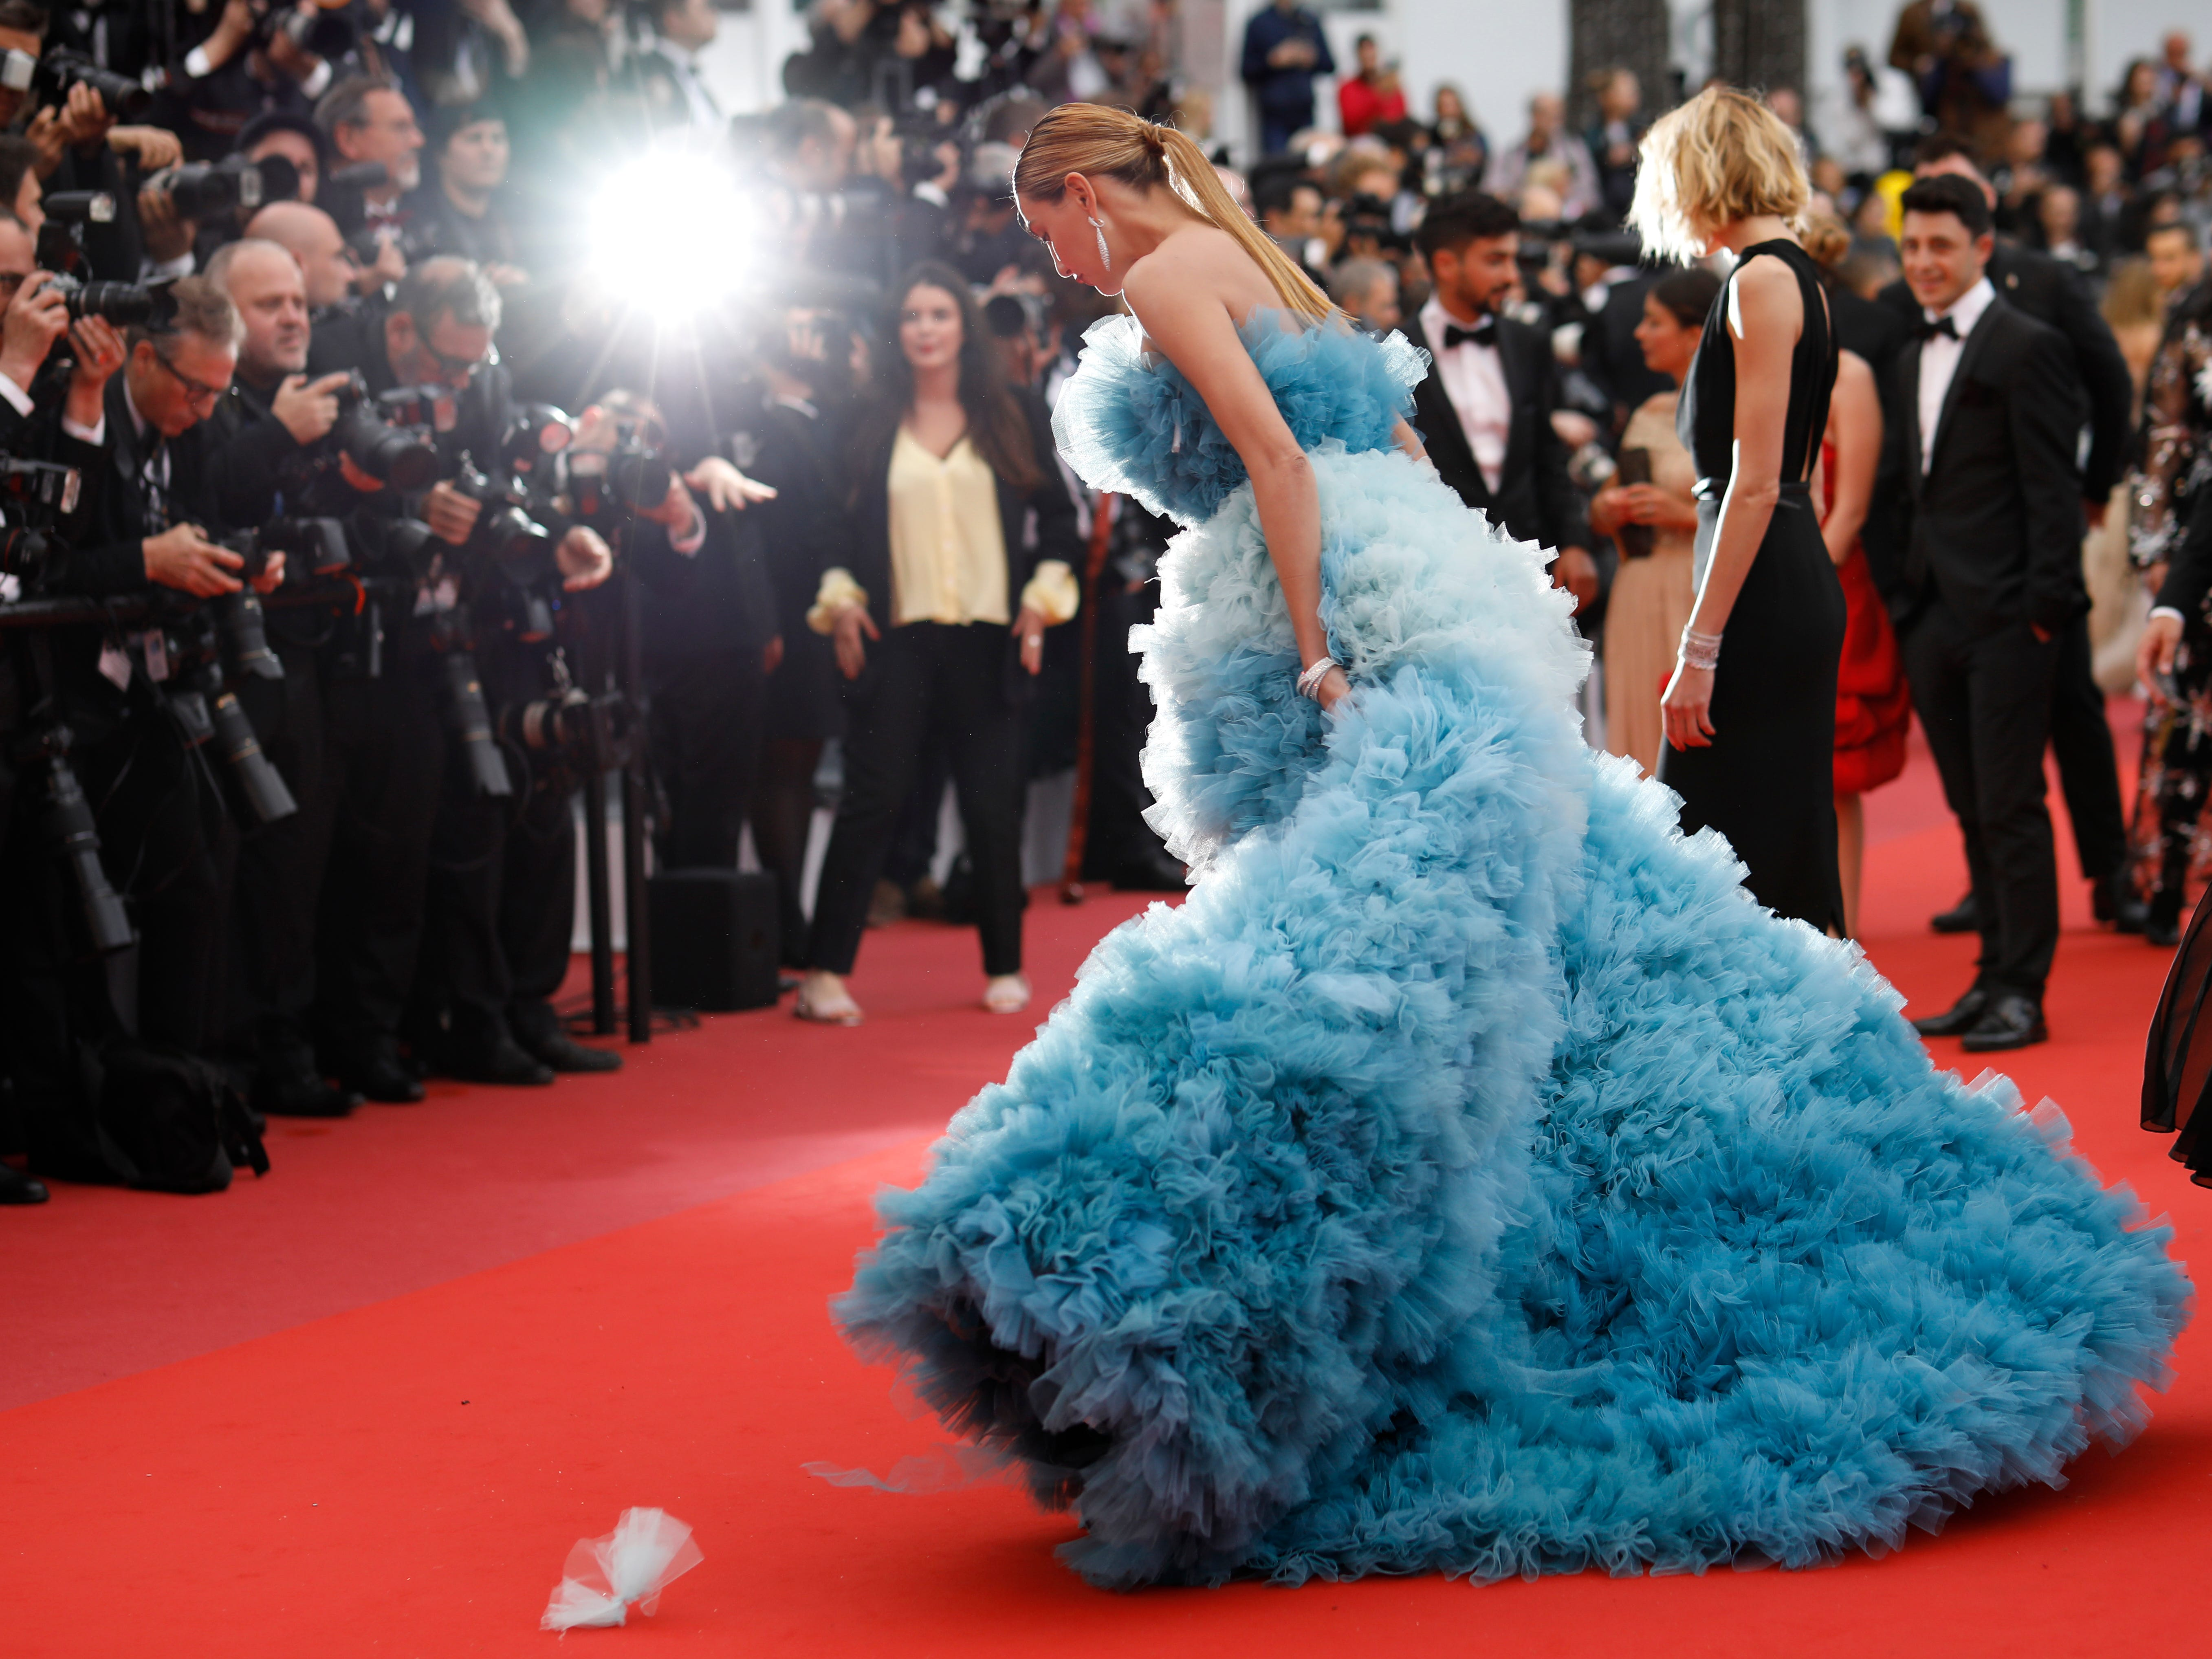 """Model Alina Baikova poses for photographers upon arrival at the premiere of the film """"A Hidden Life"""" at the 72nd international film festival, Cannes, southern France, Sunday, May 19, 2019."""